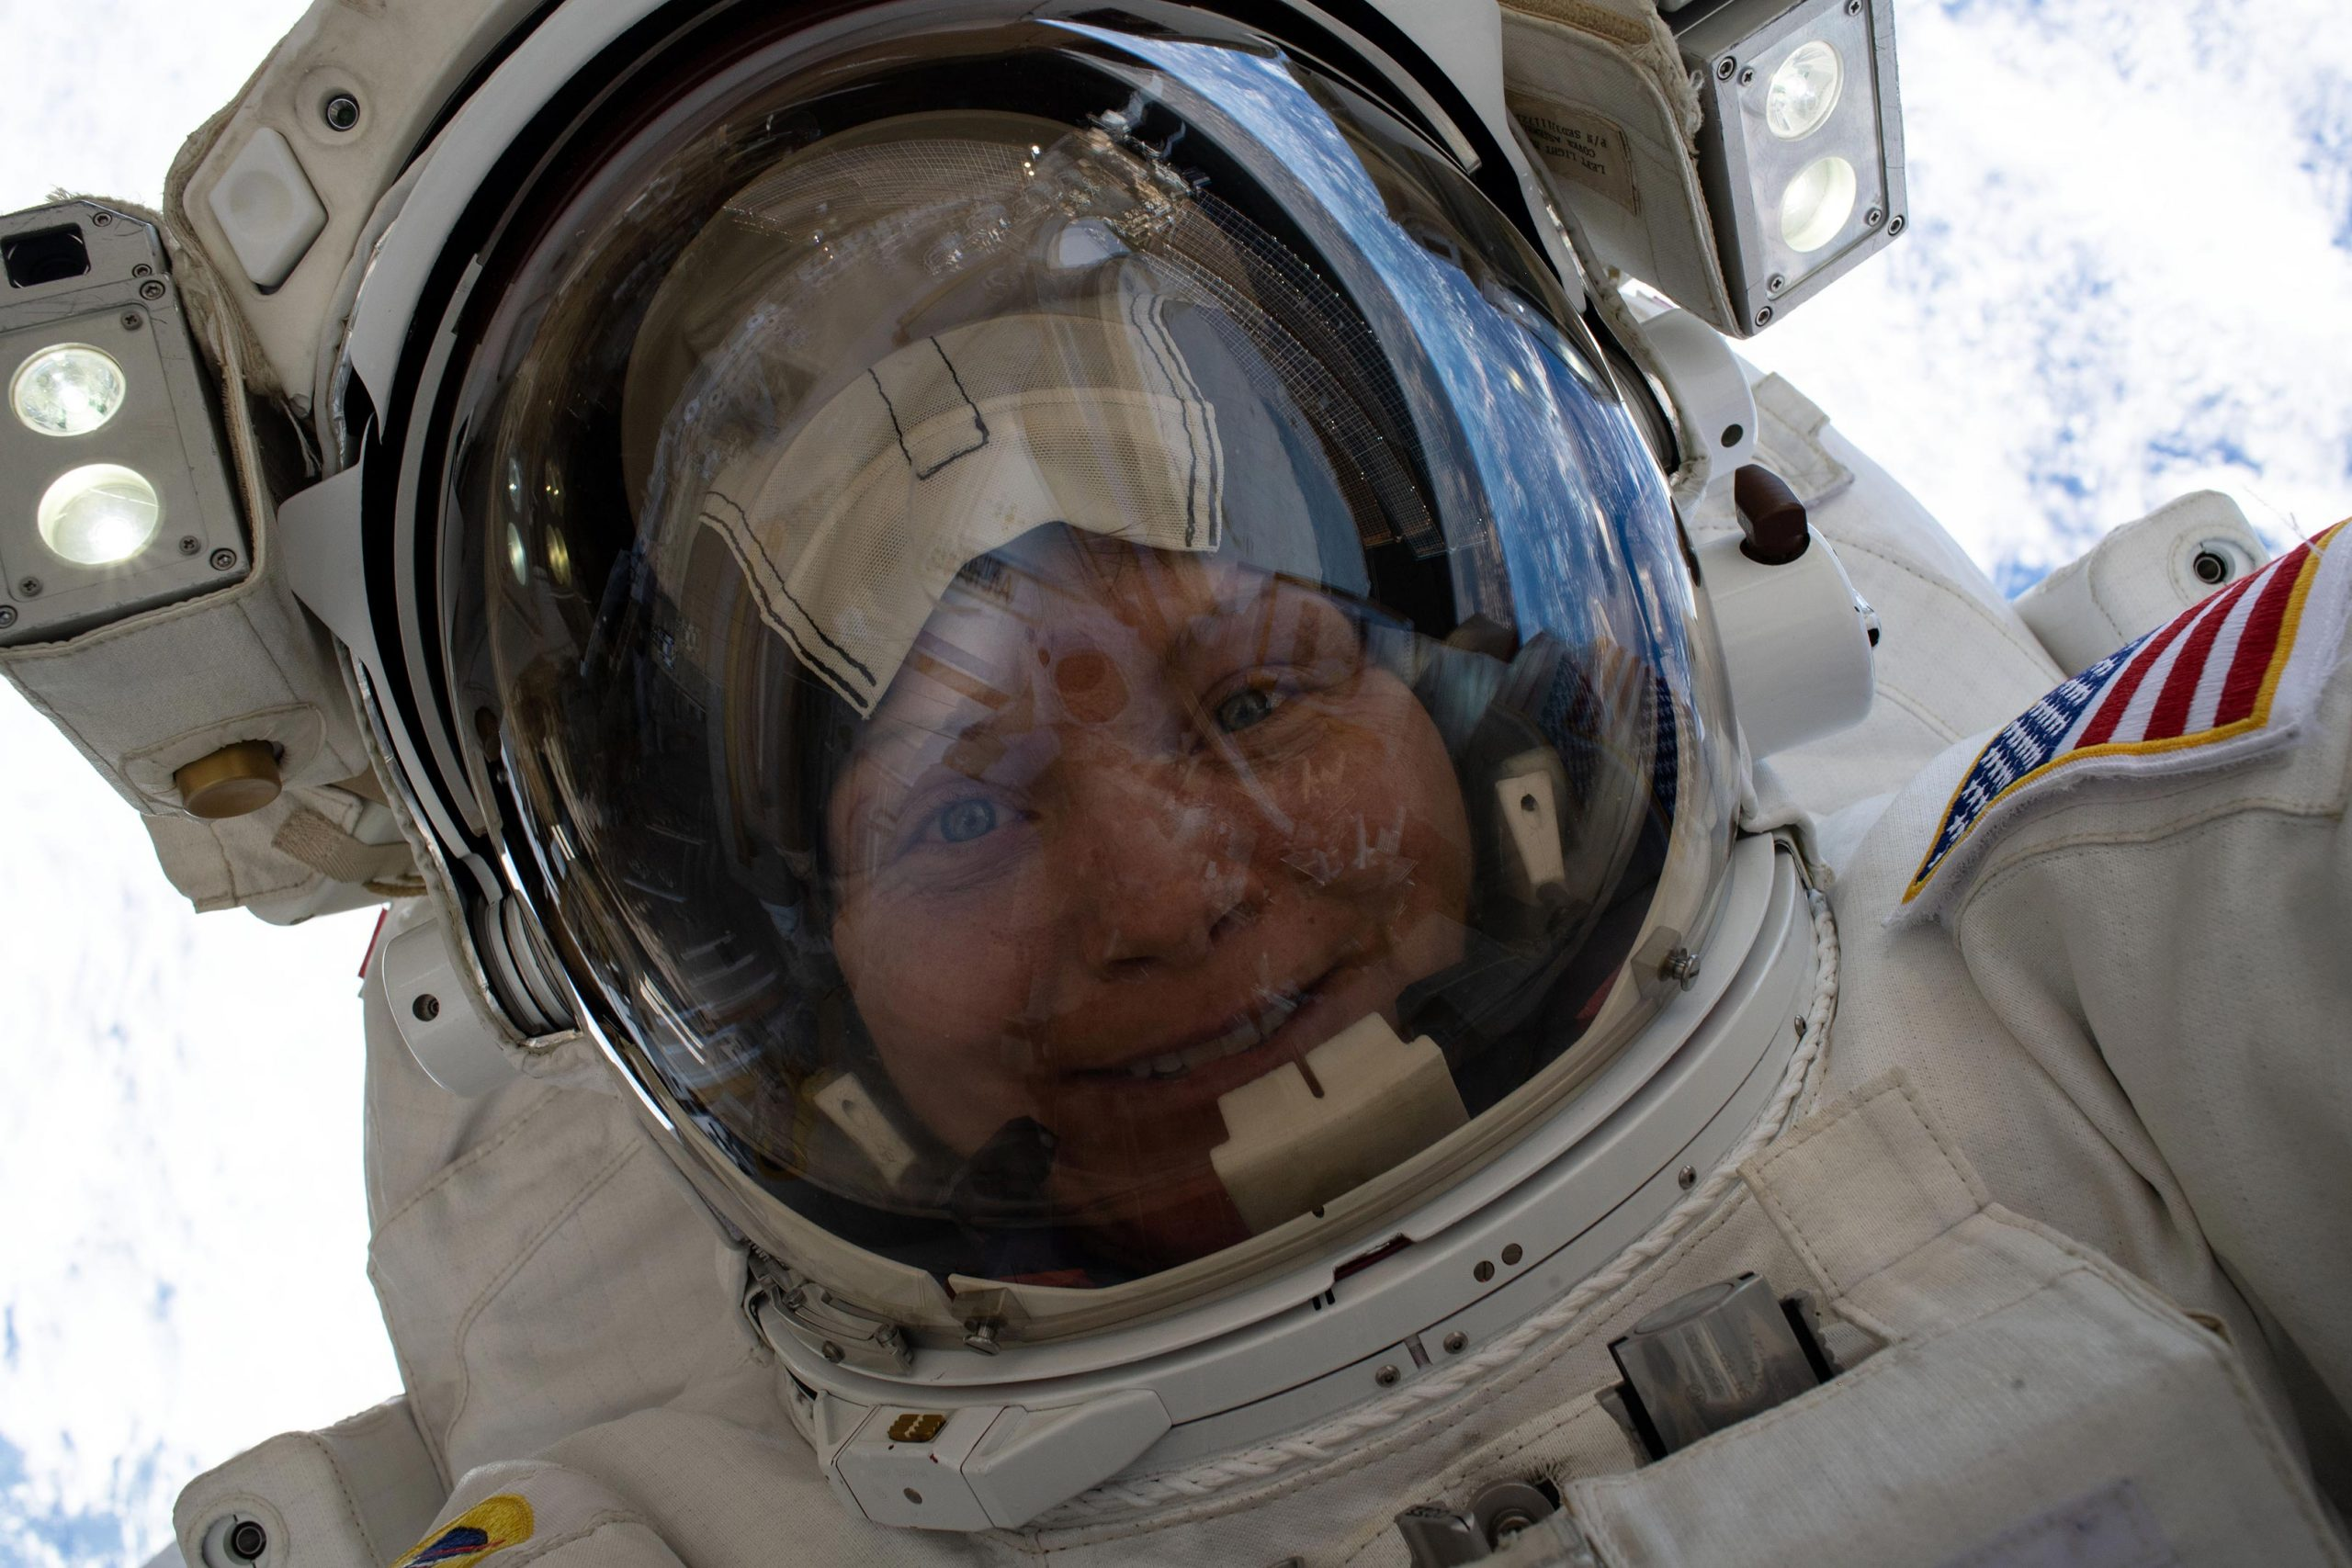 An Astronaut's Guide to Applying to Be an Astronaut – NASA Accepting Applications